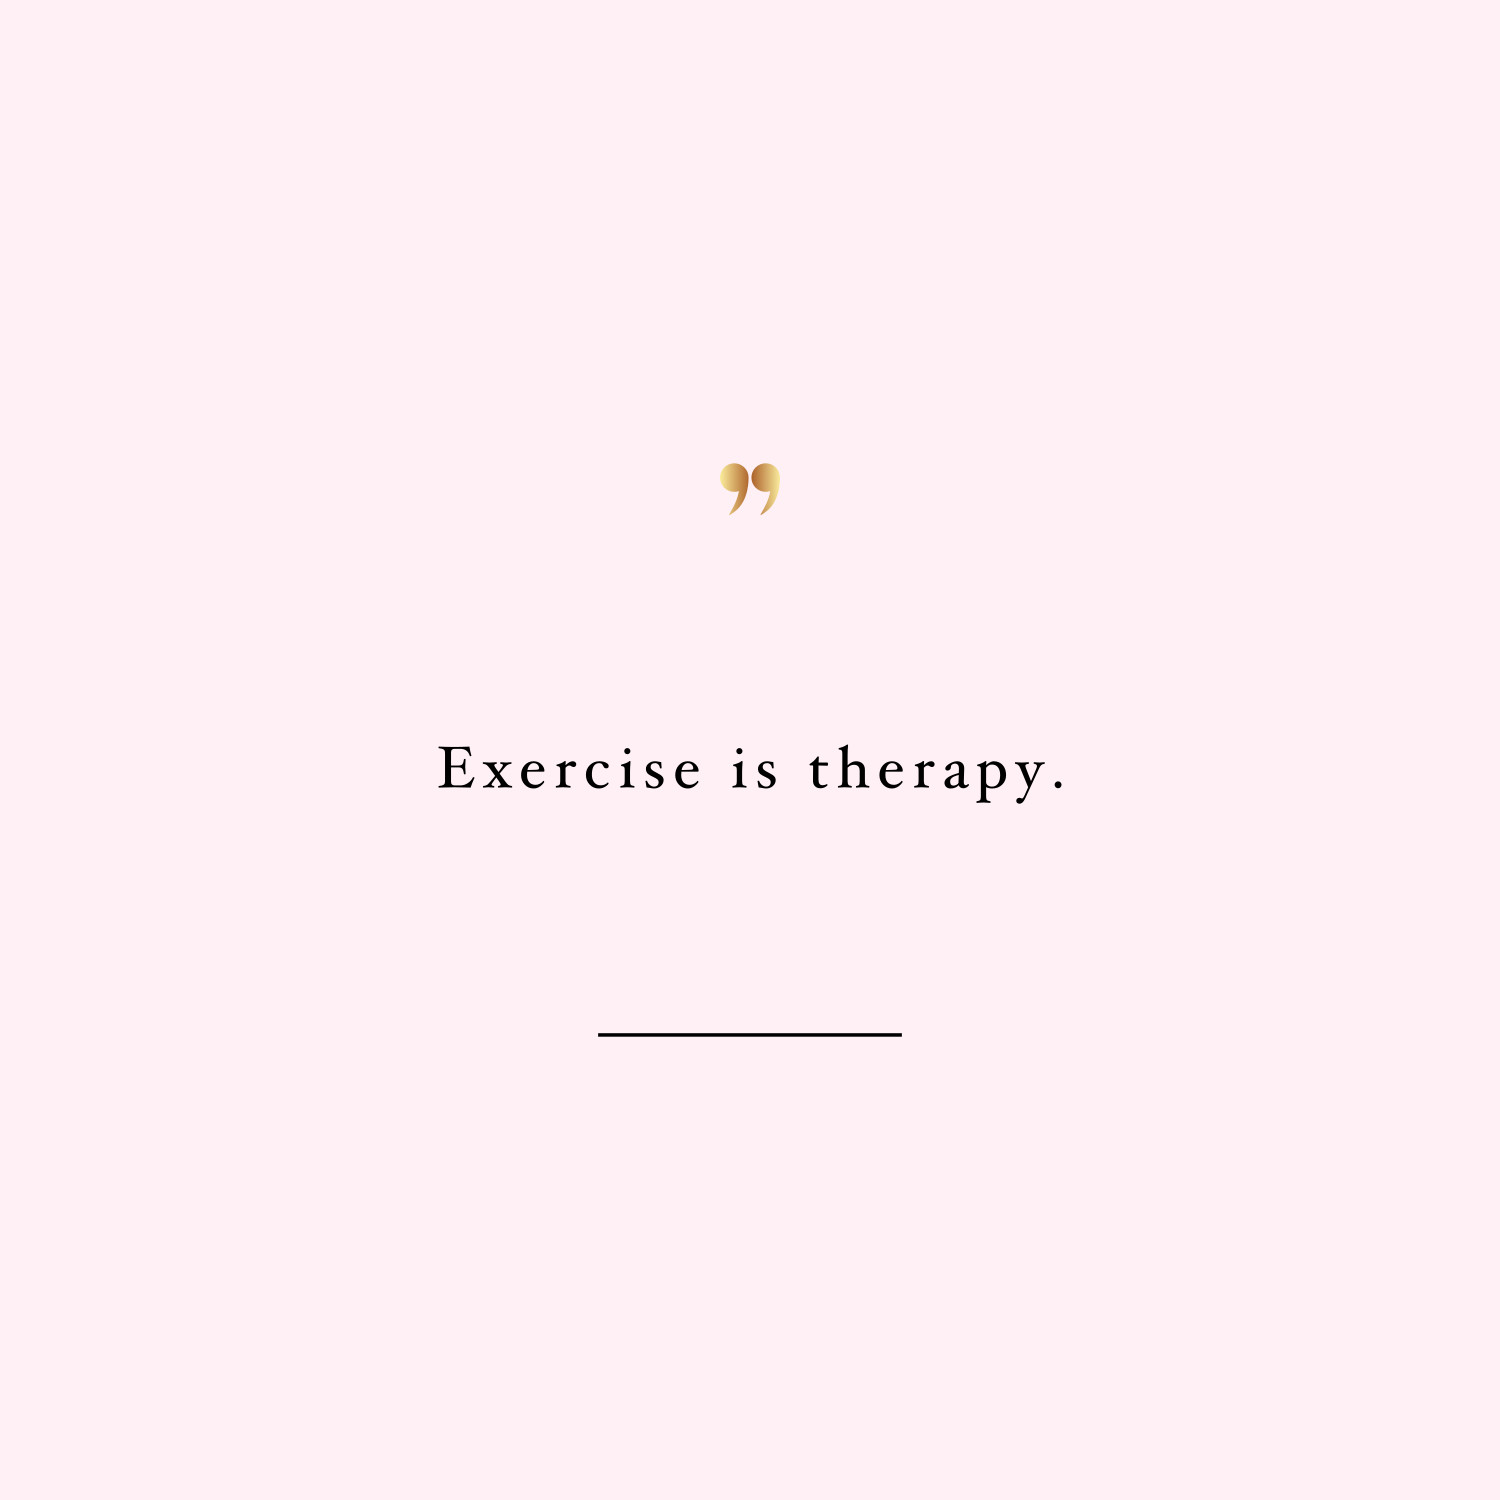 Exercise is therapy! Browse our collection of inspirational exercise quotes and get instant health and fitness motivation. Transform positive thoughts into positive actions and get fit, healthy and happy! https://www.spotebi.com/workout-motivation/exercise-is-therapy-health-and-fitness-motivation-quote/